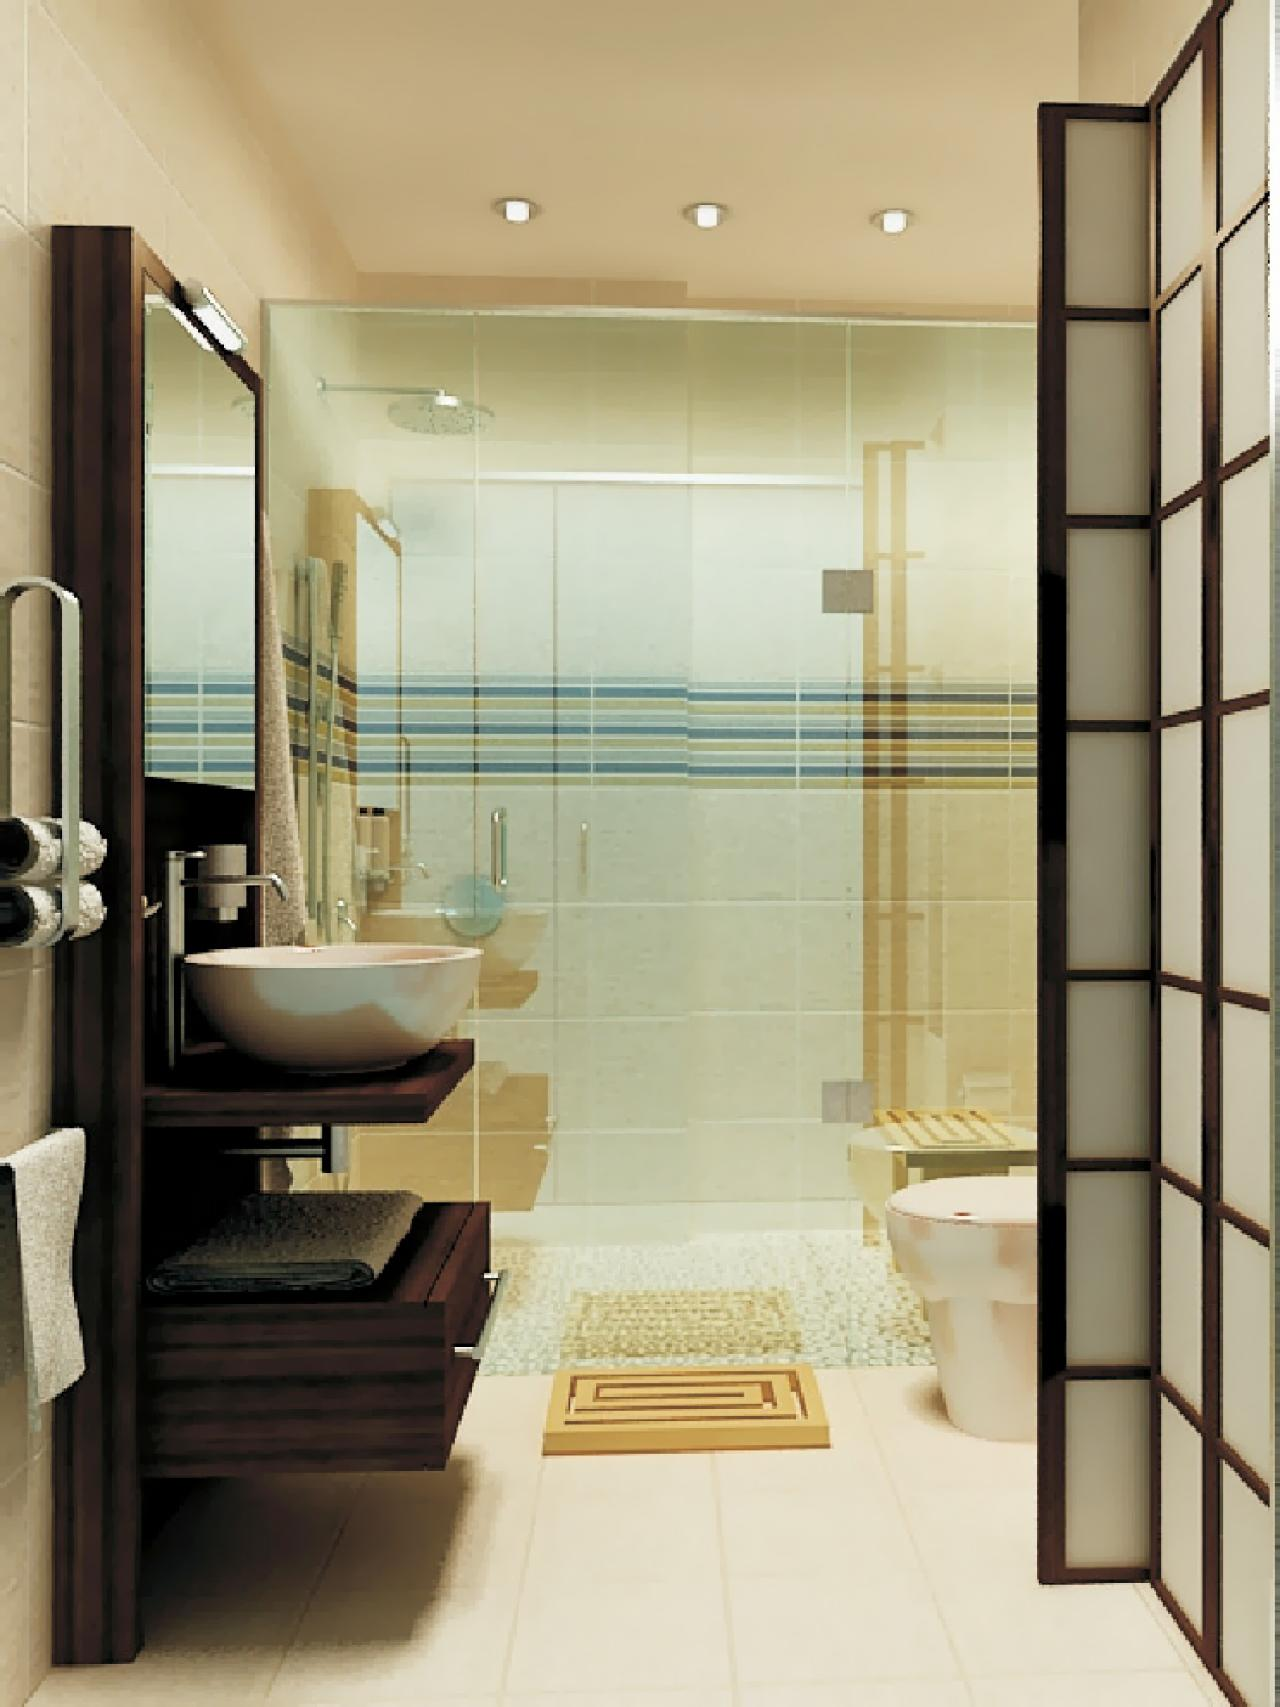 Small Luxury Bathrooms on Small Space Small Bathroom Ideas  id=55067